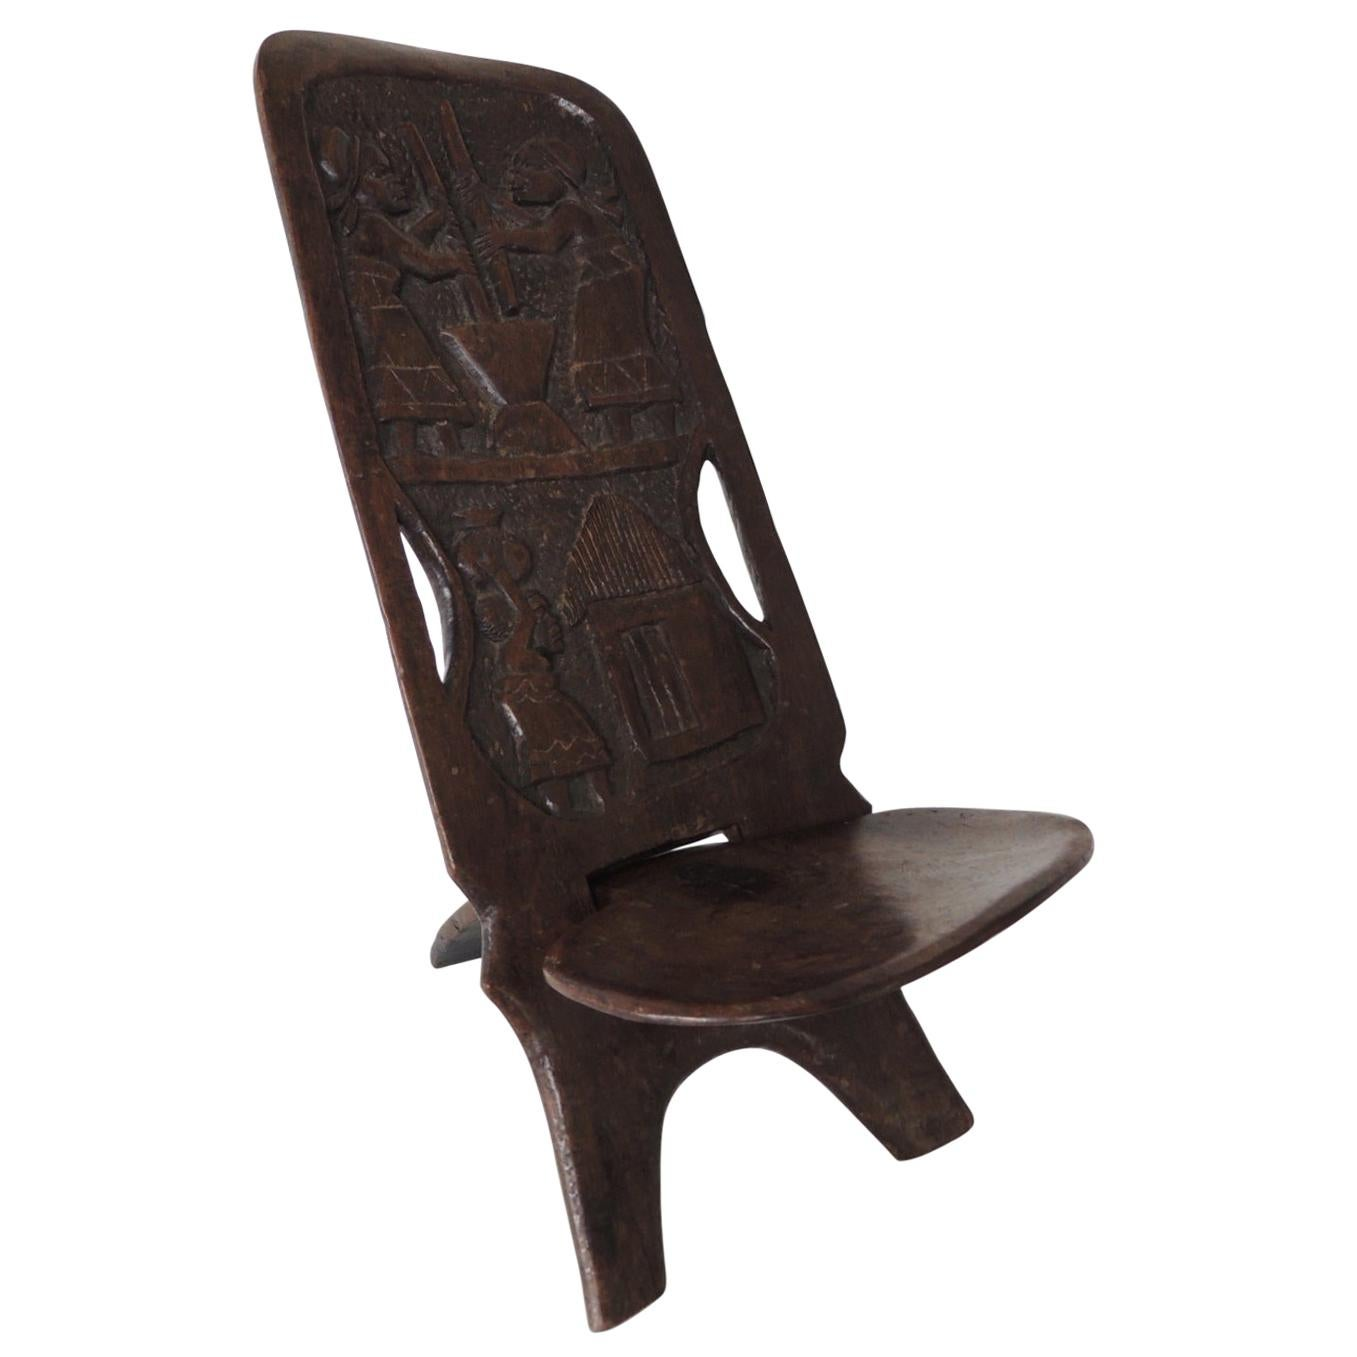 African Palaver Child's Folding Chair